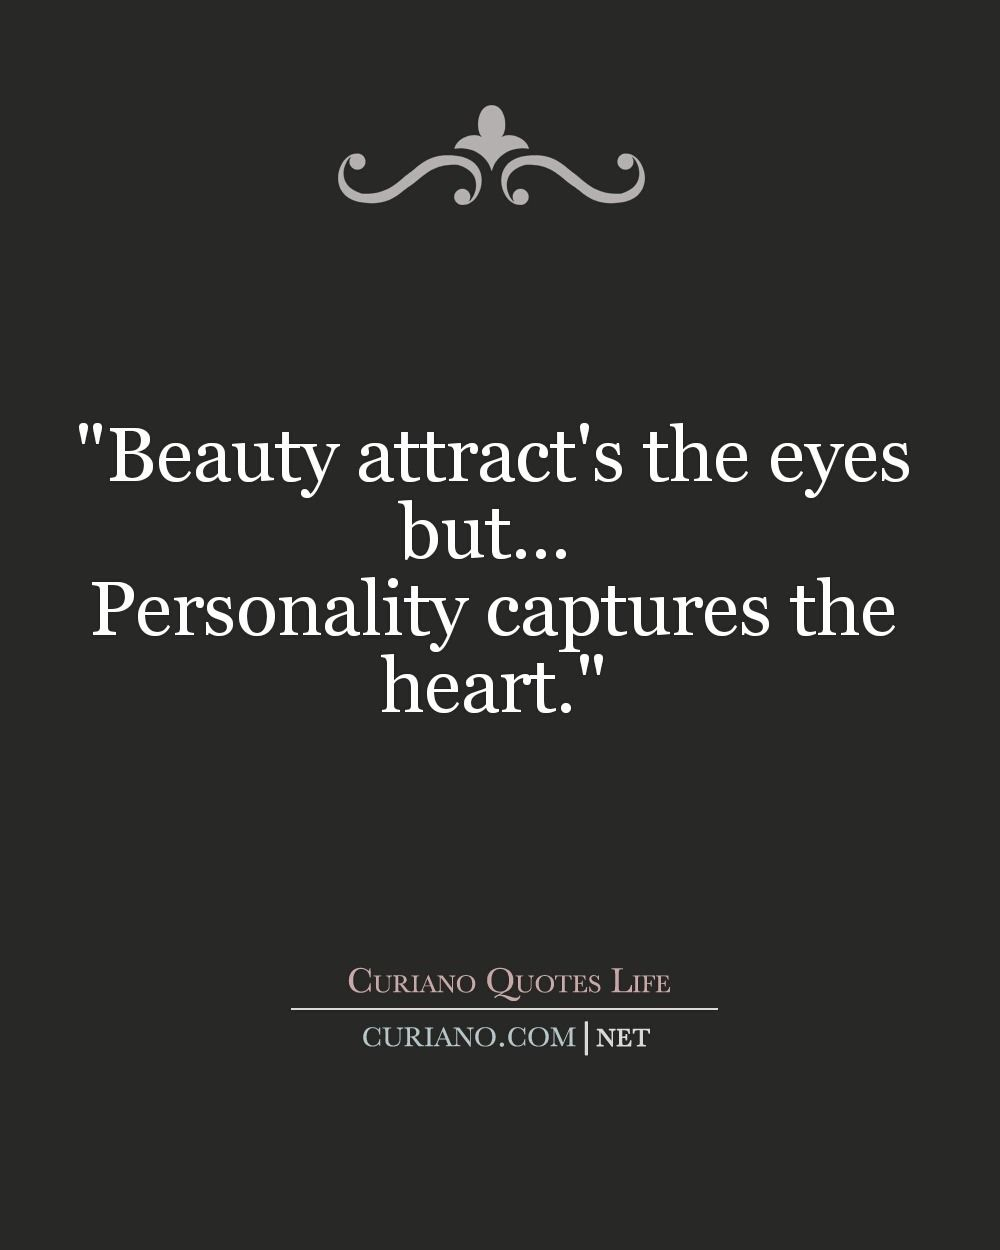 Quote About Life This Blog Curiano Quotes Life Shows Quotes Best Life Quote Life .